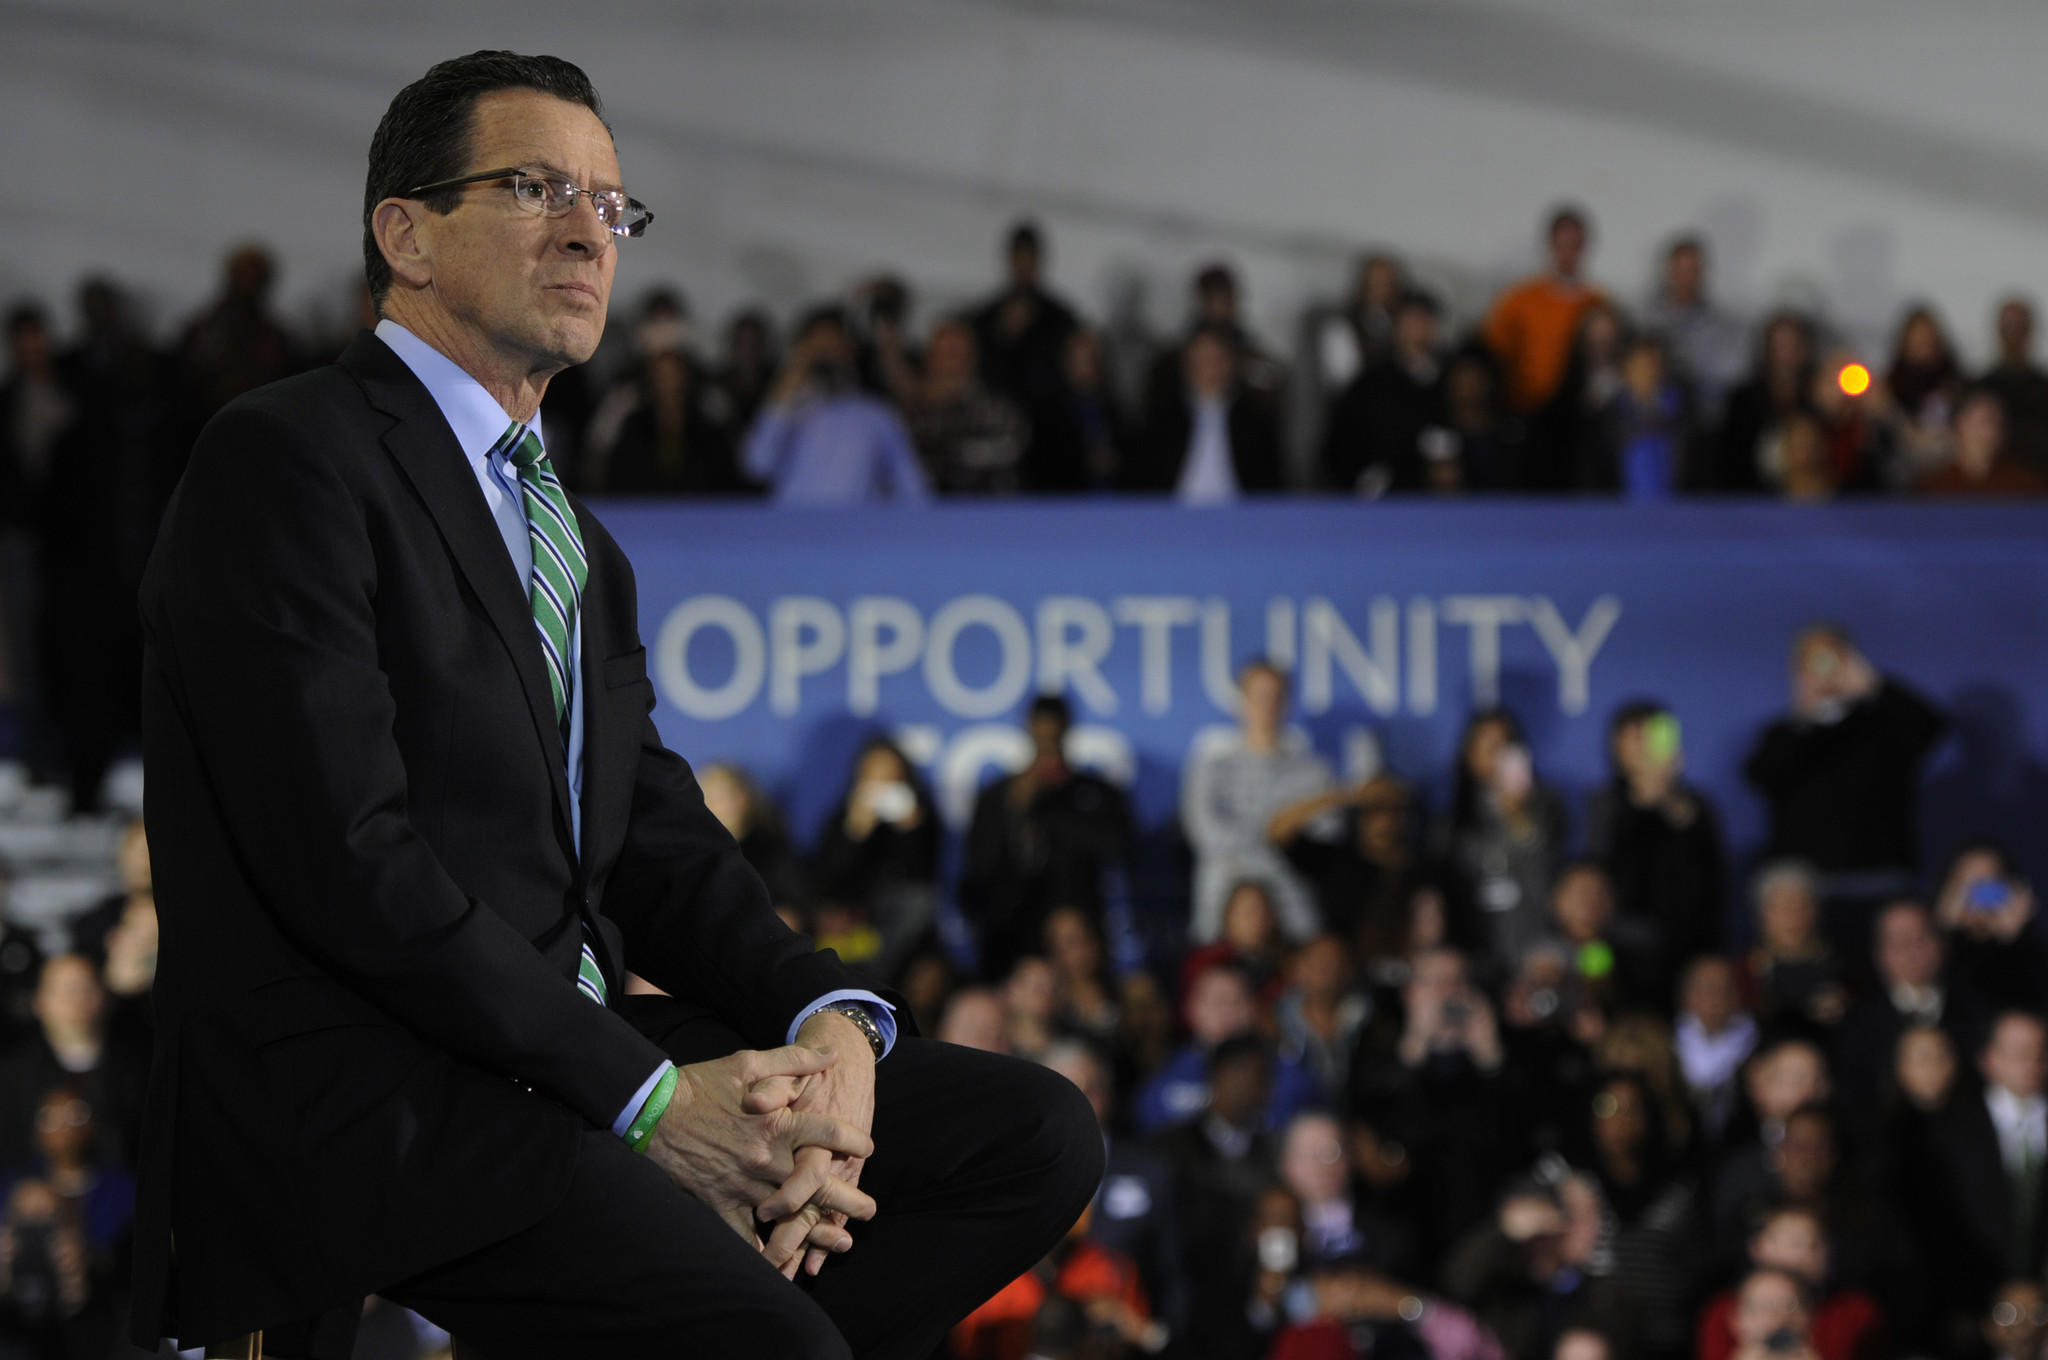 Gov. Dannel P. Malloy listens to President Obama's speech on raising the minimum wage as the president visited the state on March 5.